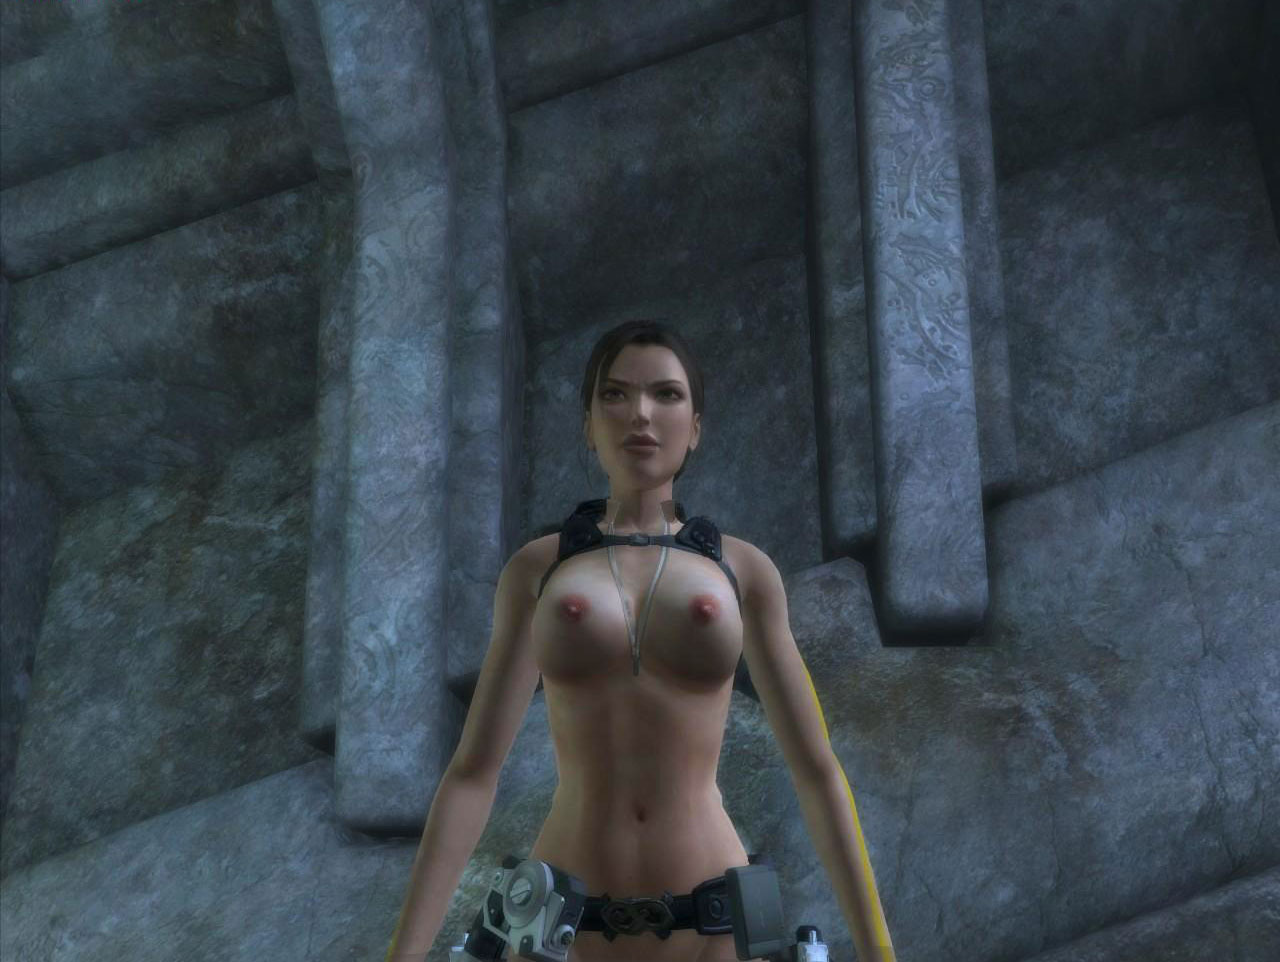 Tomb raider 2013 sex patch pron videos